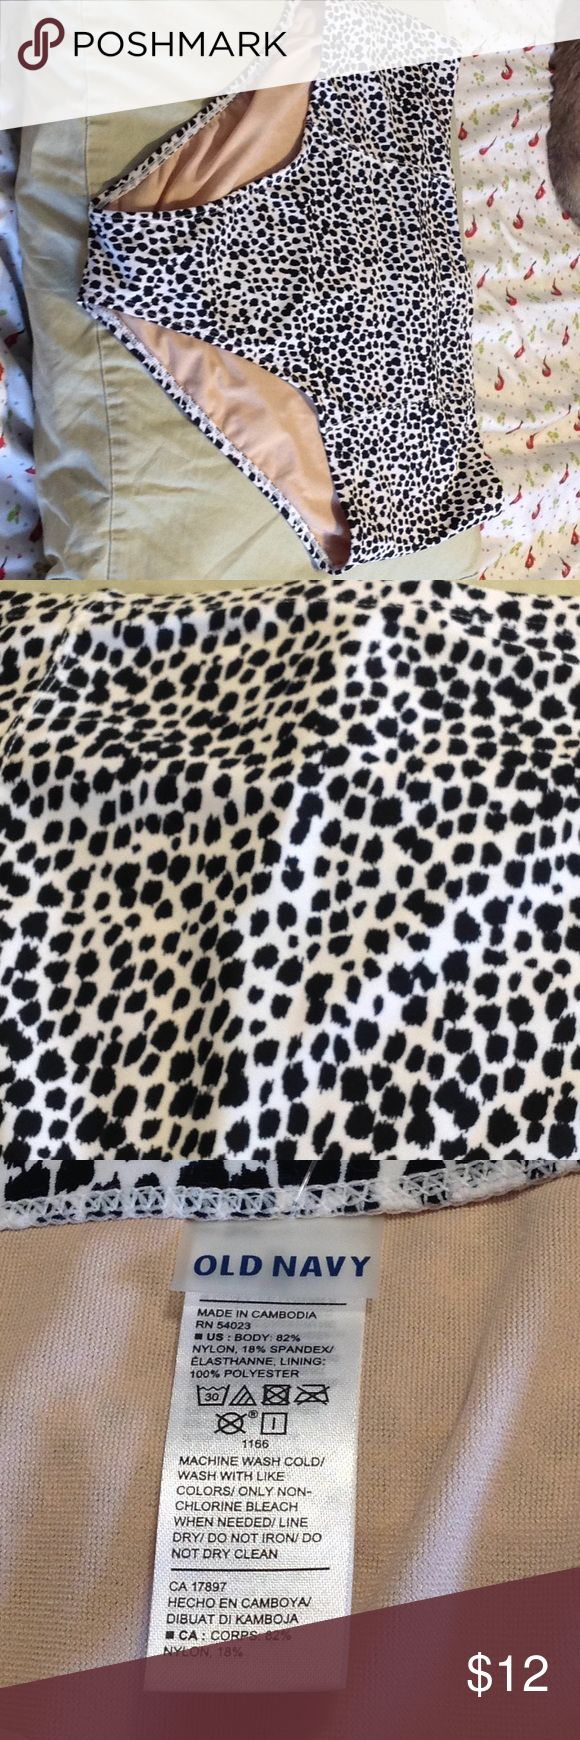 NWT Old Navy high waist bikini bottom NWT Old Navy high waist bikini bottom in cute leopard print! Perfect to mix and match with any color bikini top. Old Navy Swim